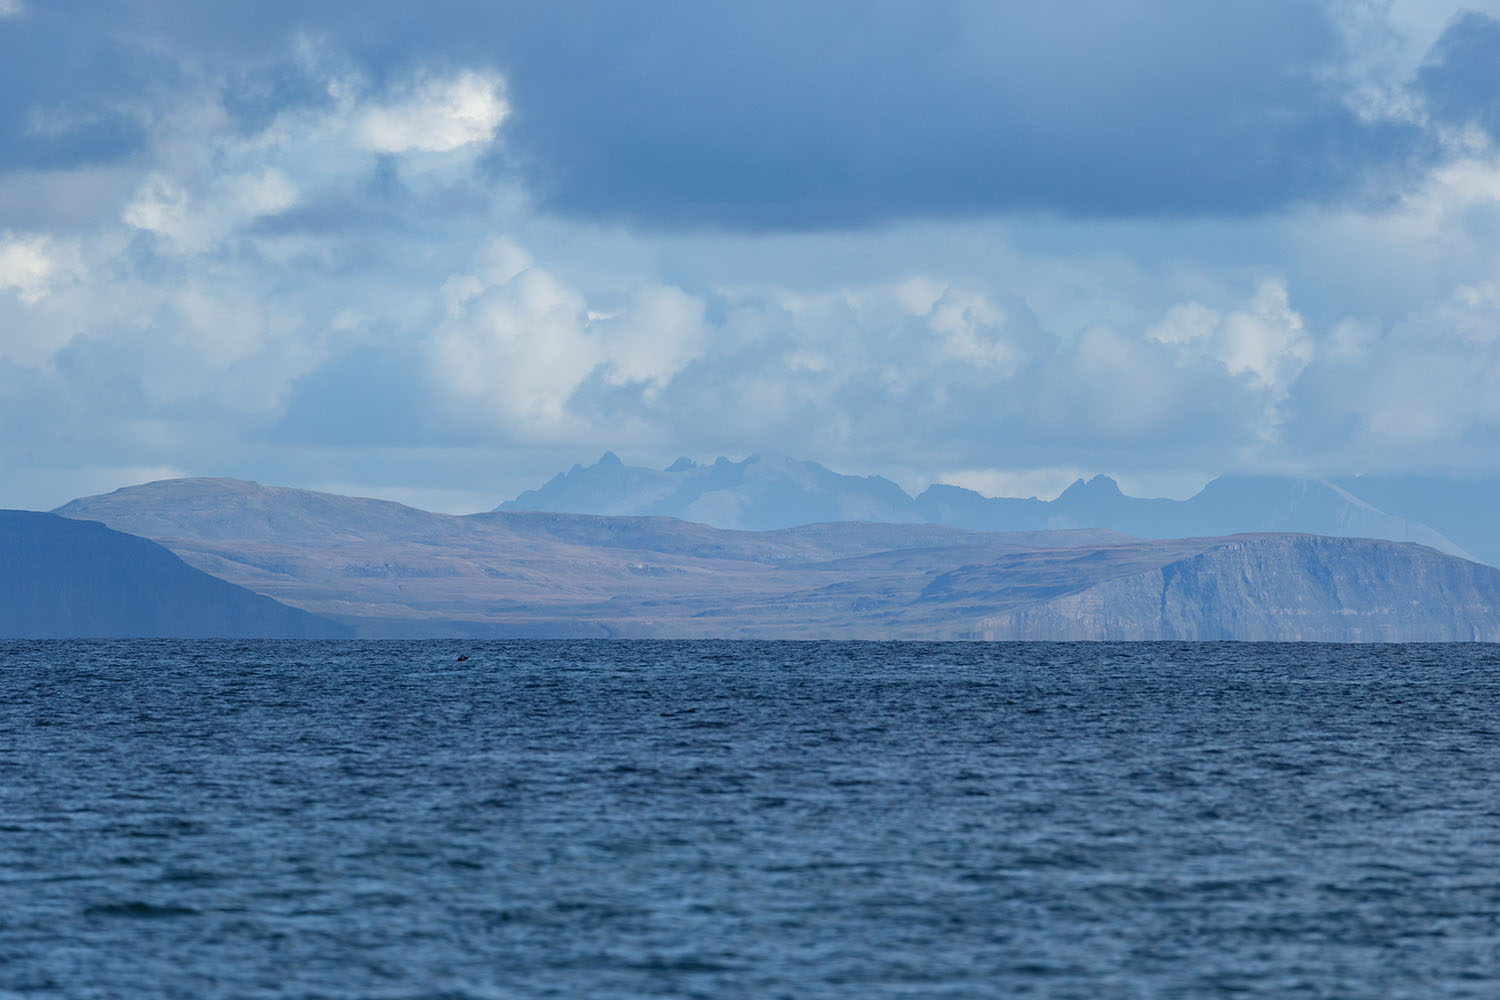 View of Skye from the boat